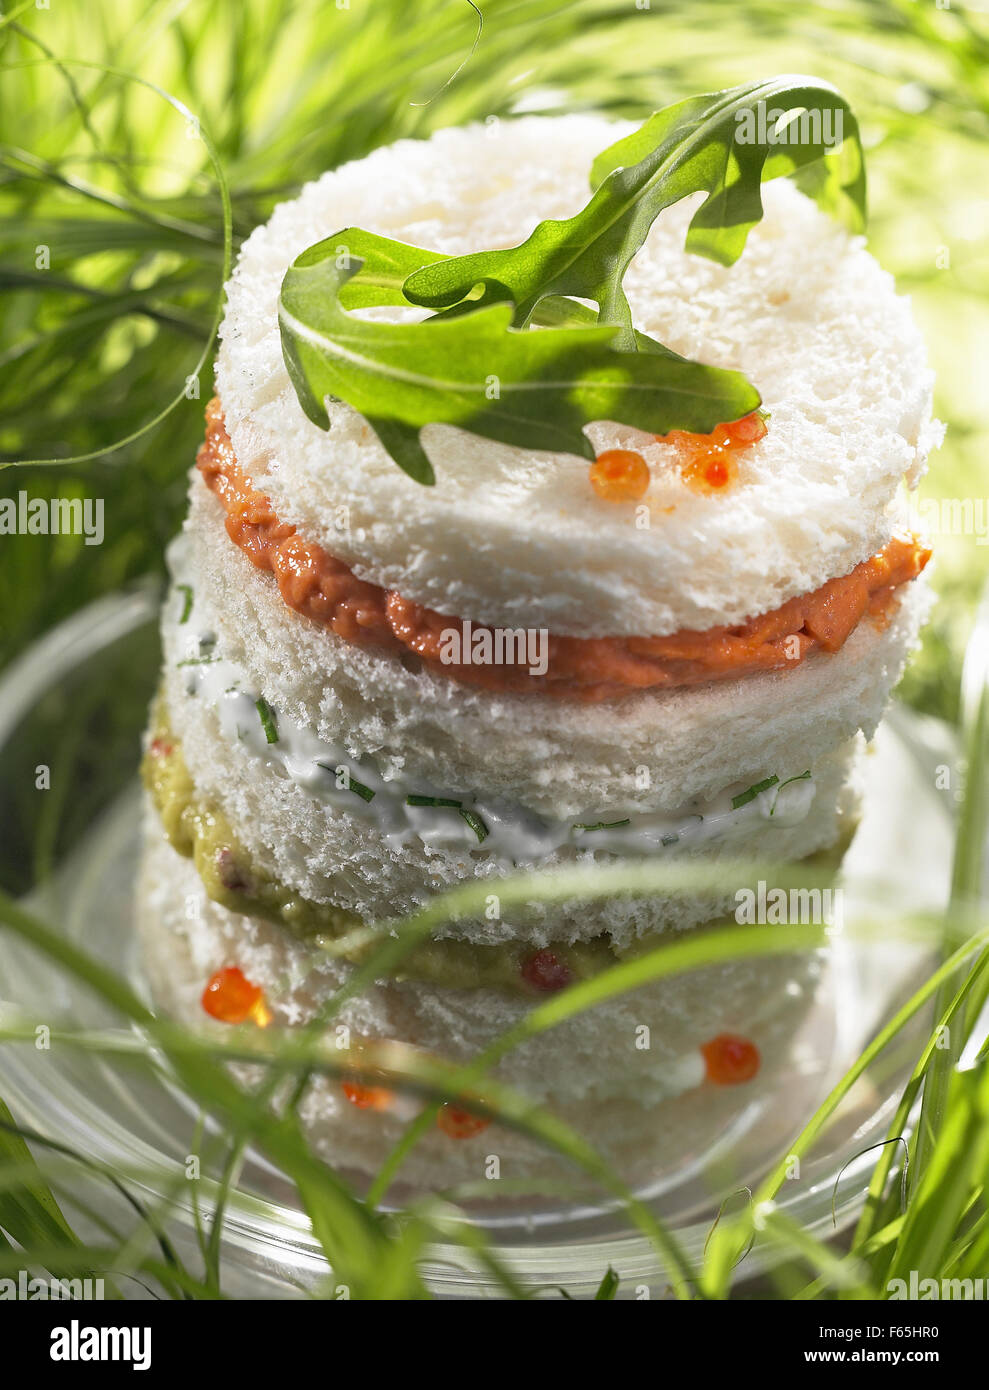 lobster-spiny lobster, cream and guacamole canapé sandwich (topic: summer snacks) Stock Photo